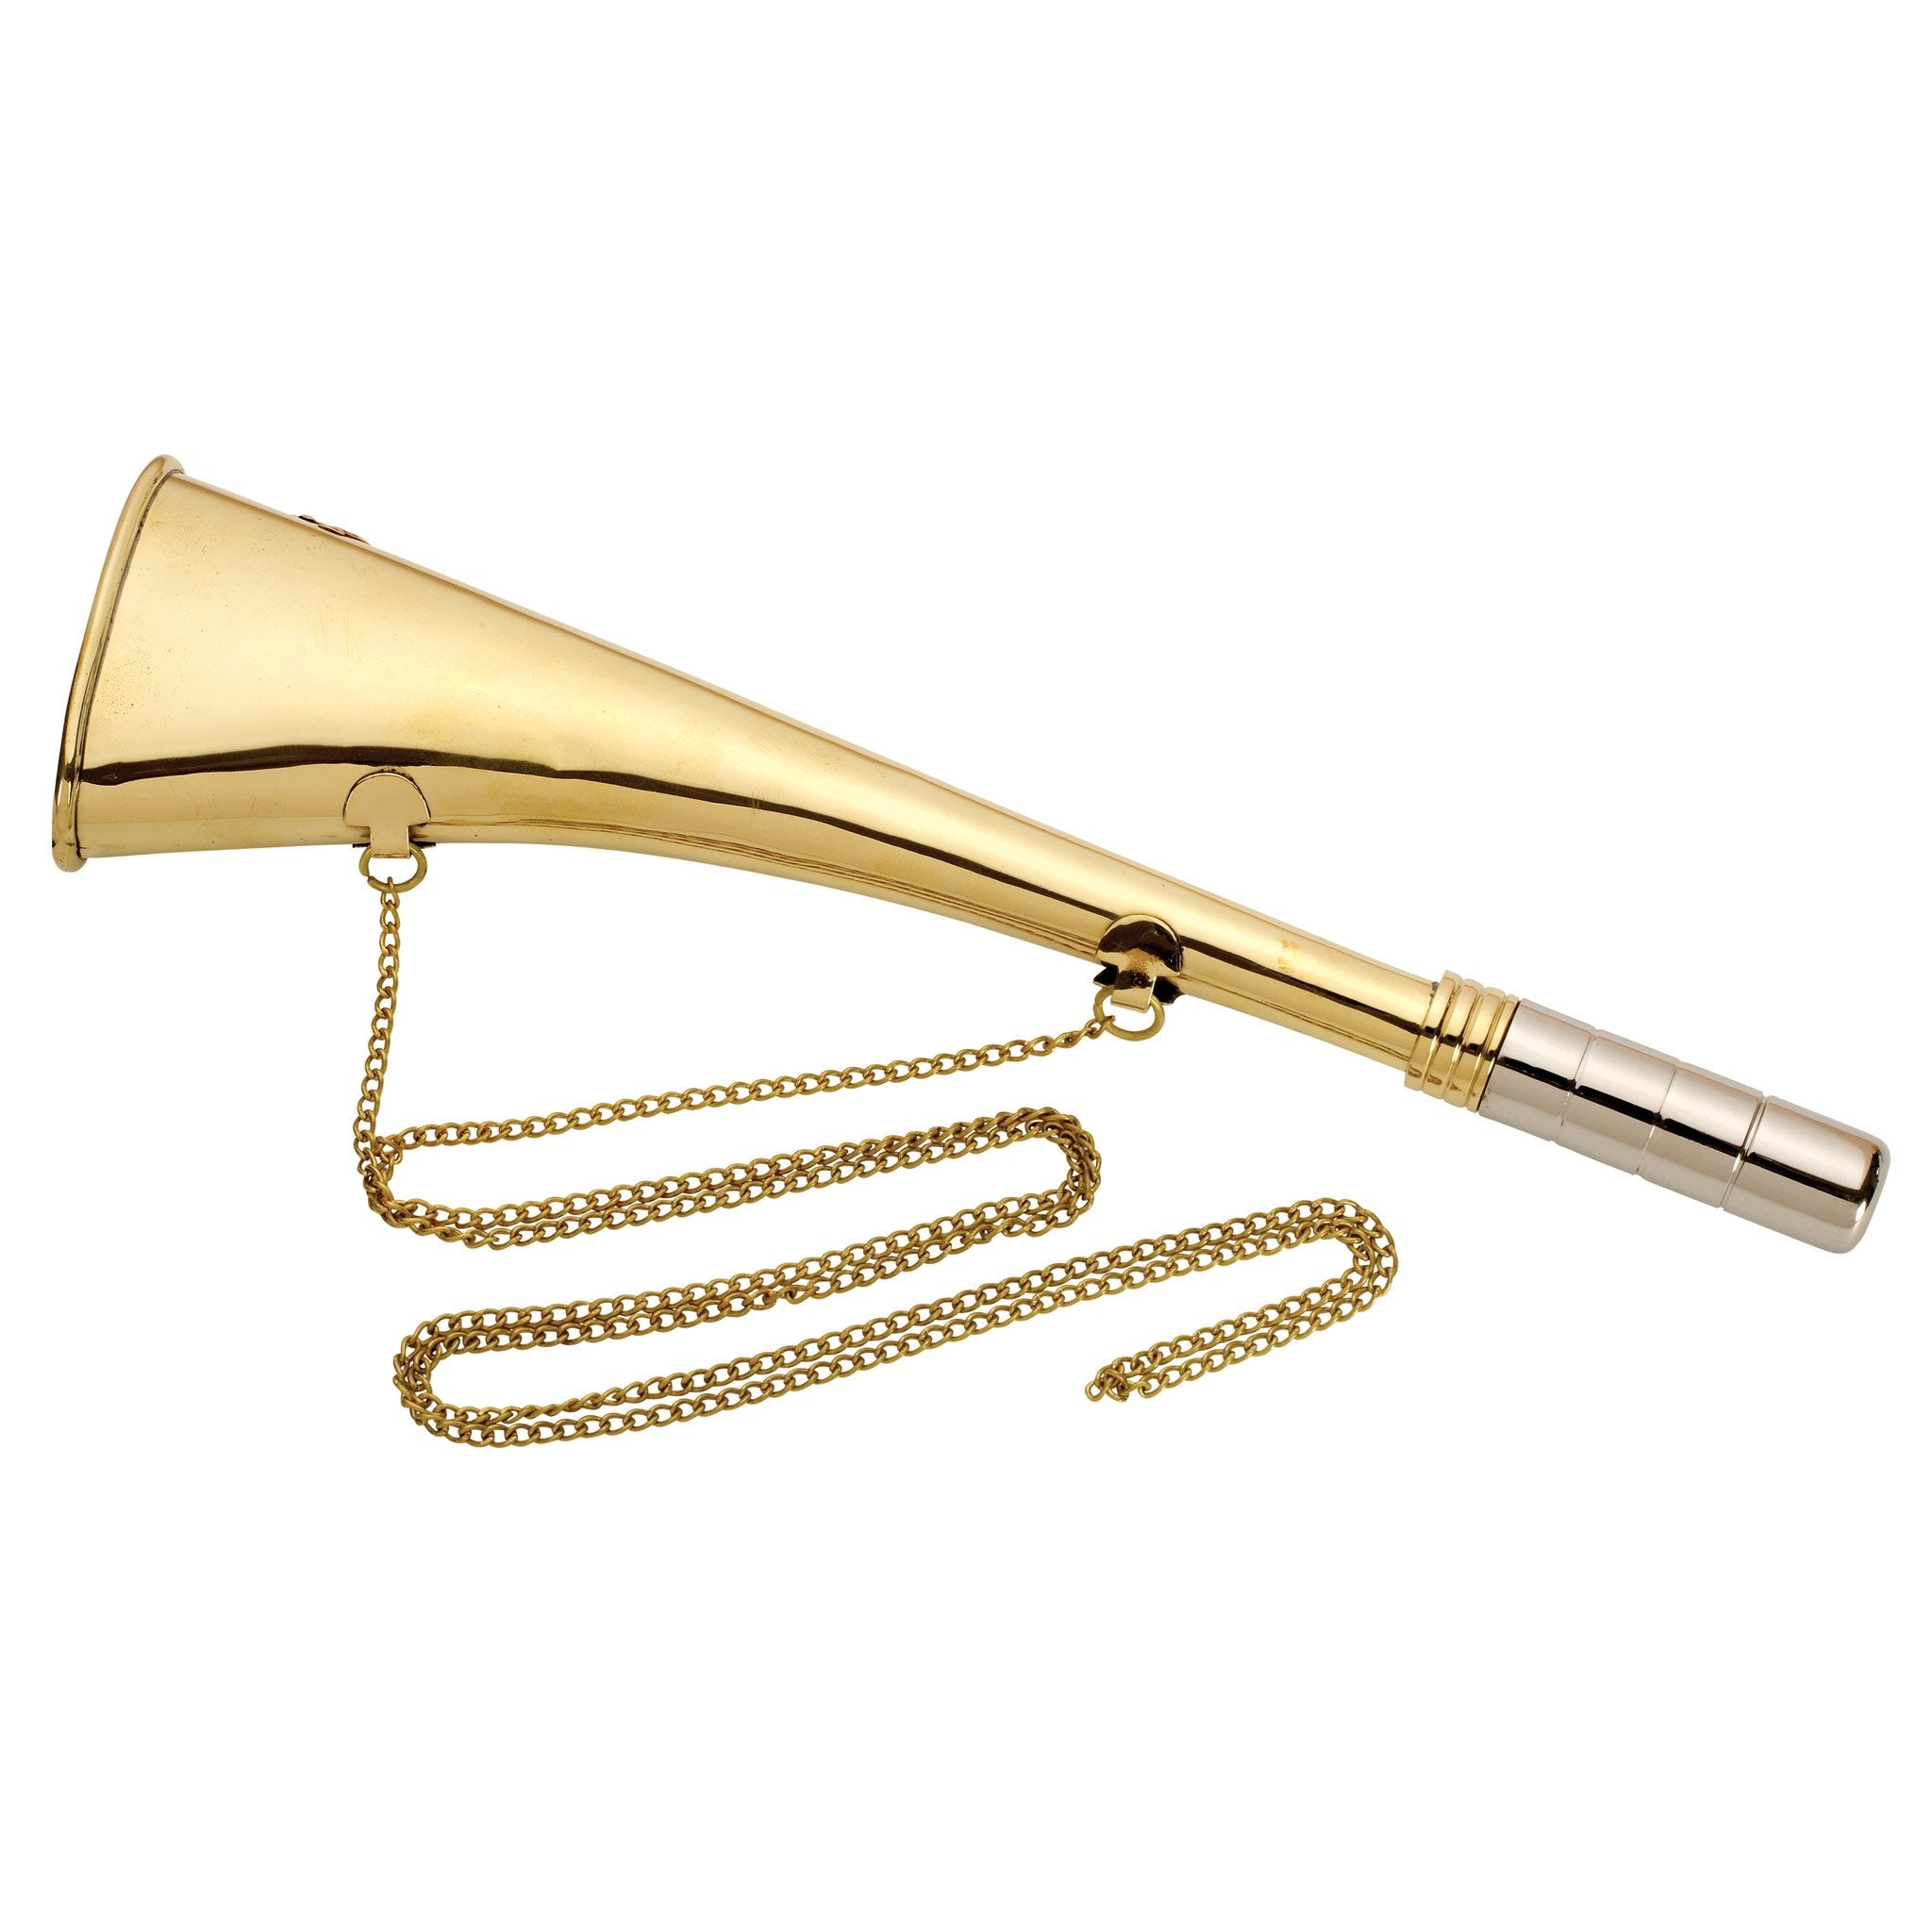 Brass Mouth Horn & Chain - Arthur Beale